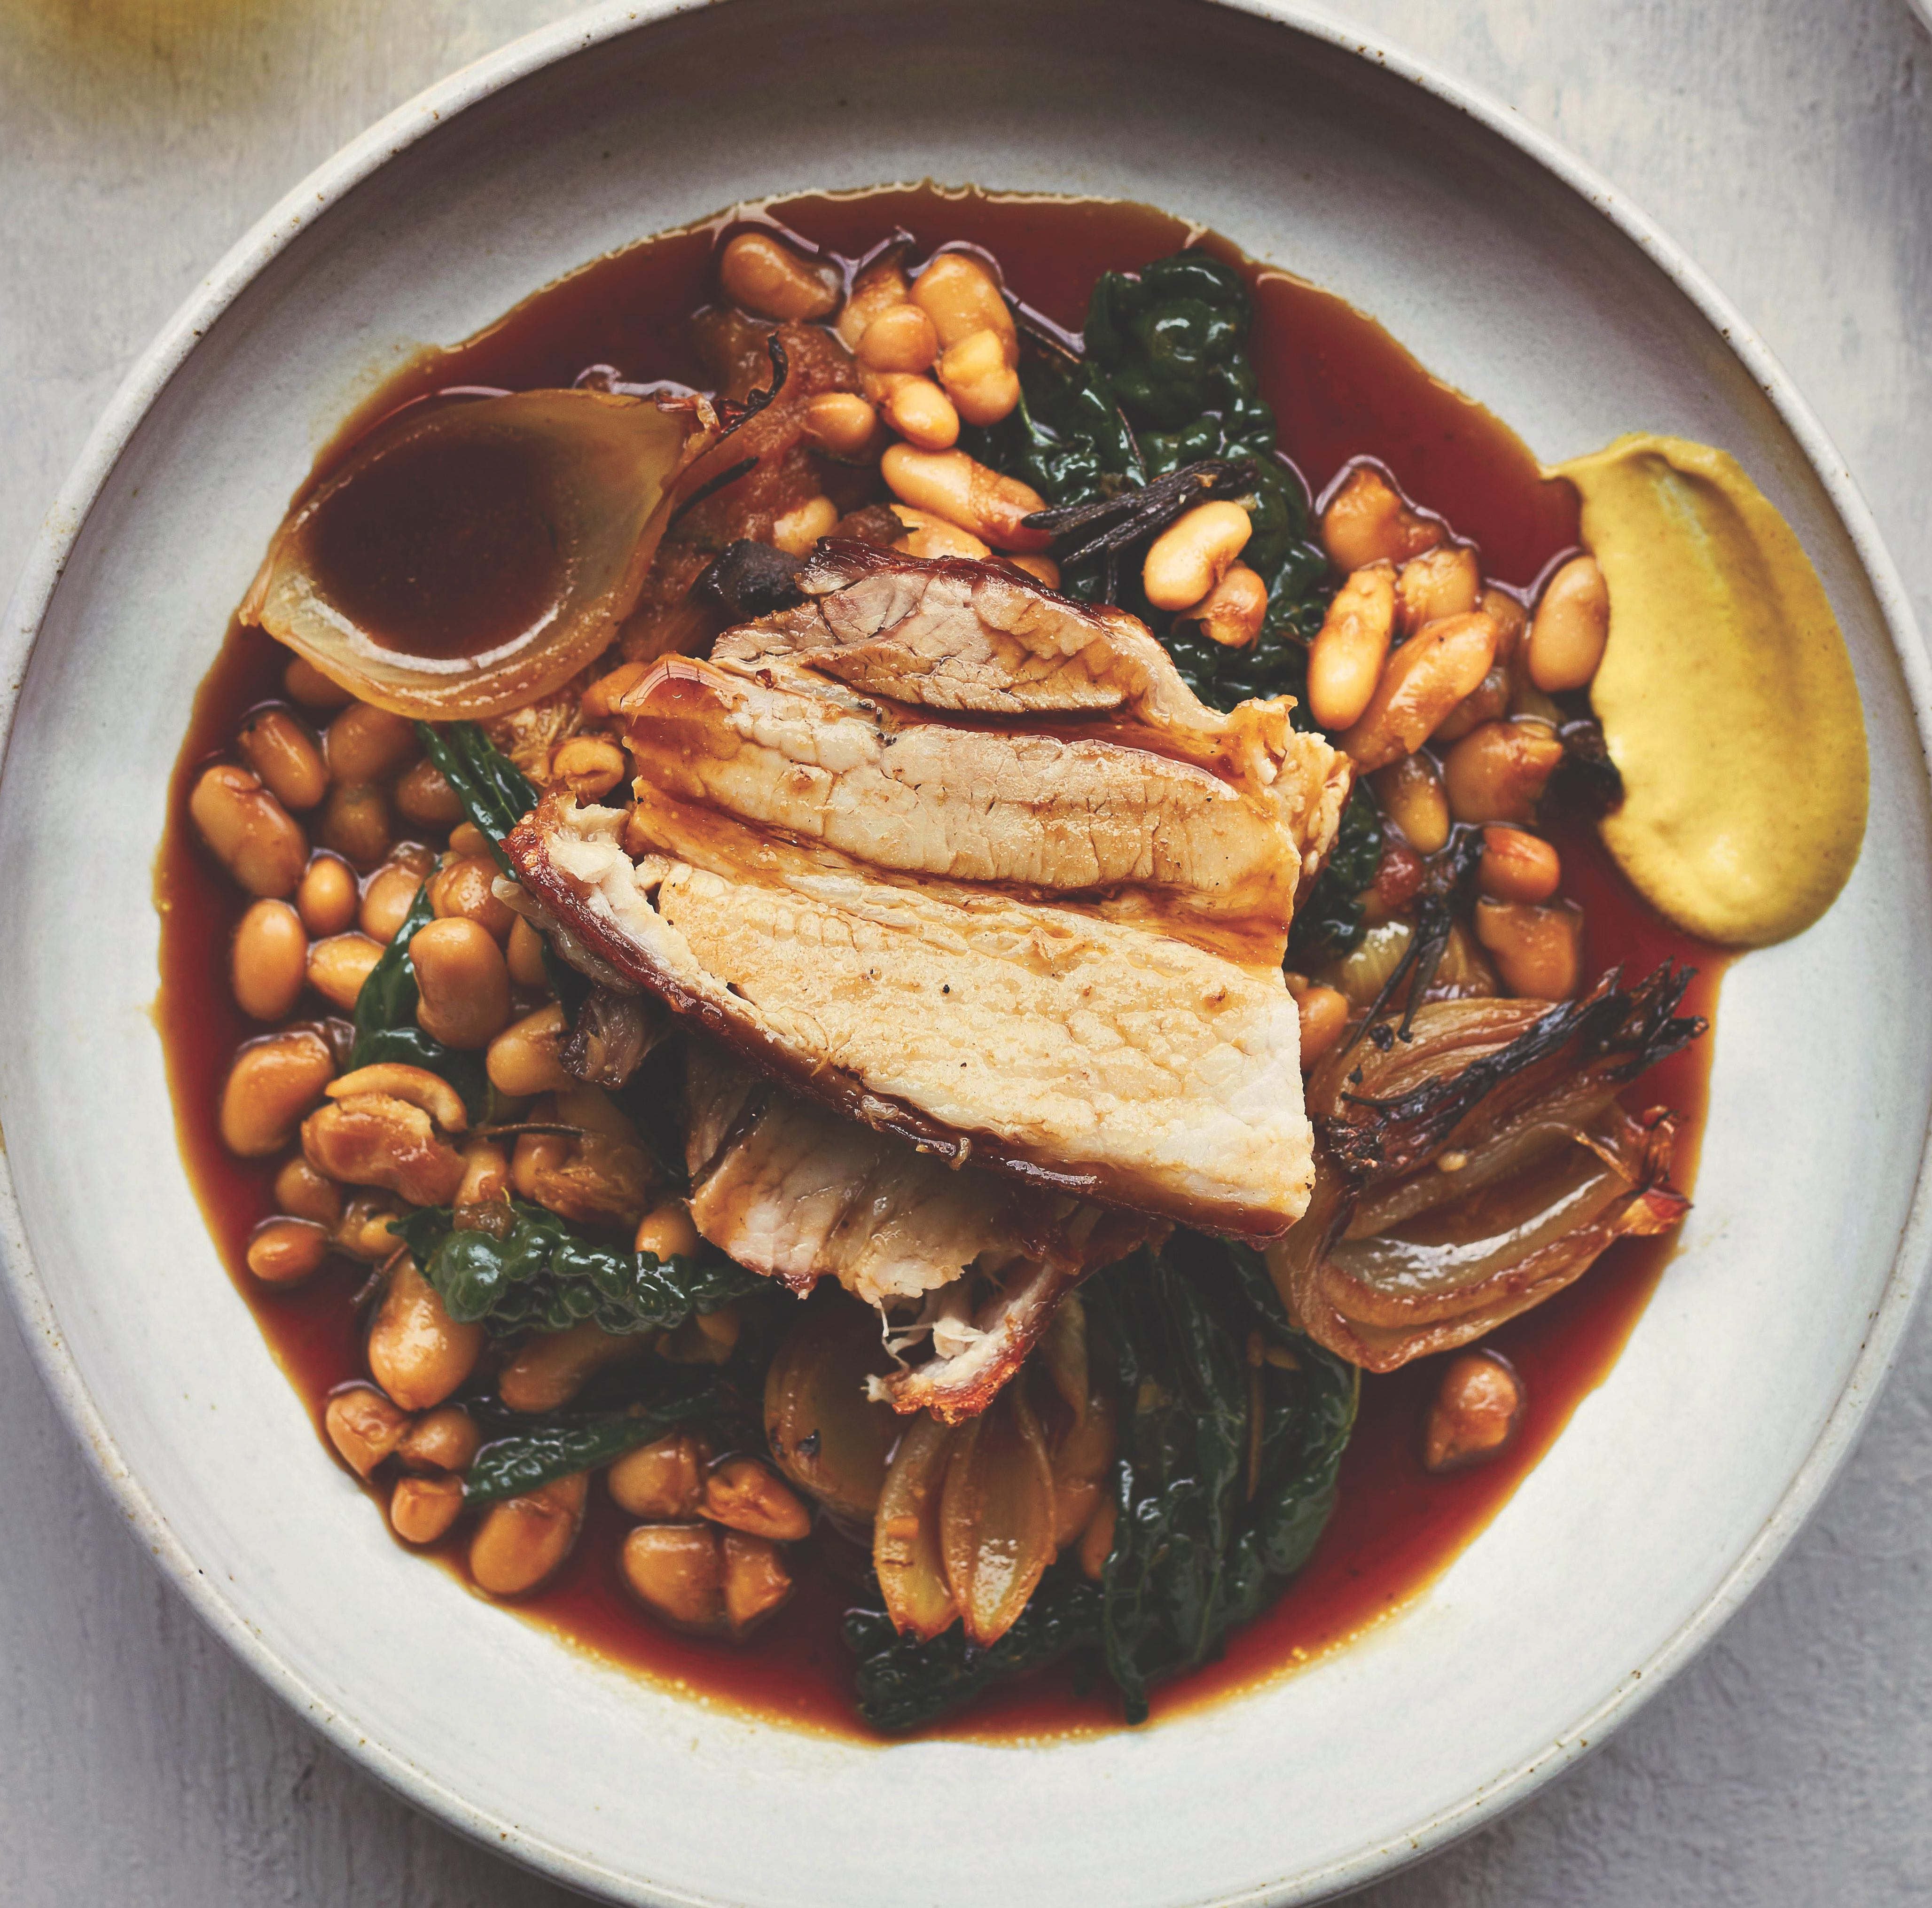 Slow-roasted pork belly with cannellini beans recipe